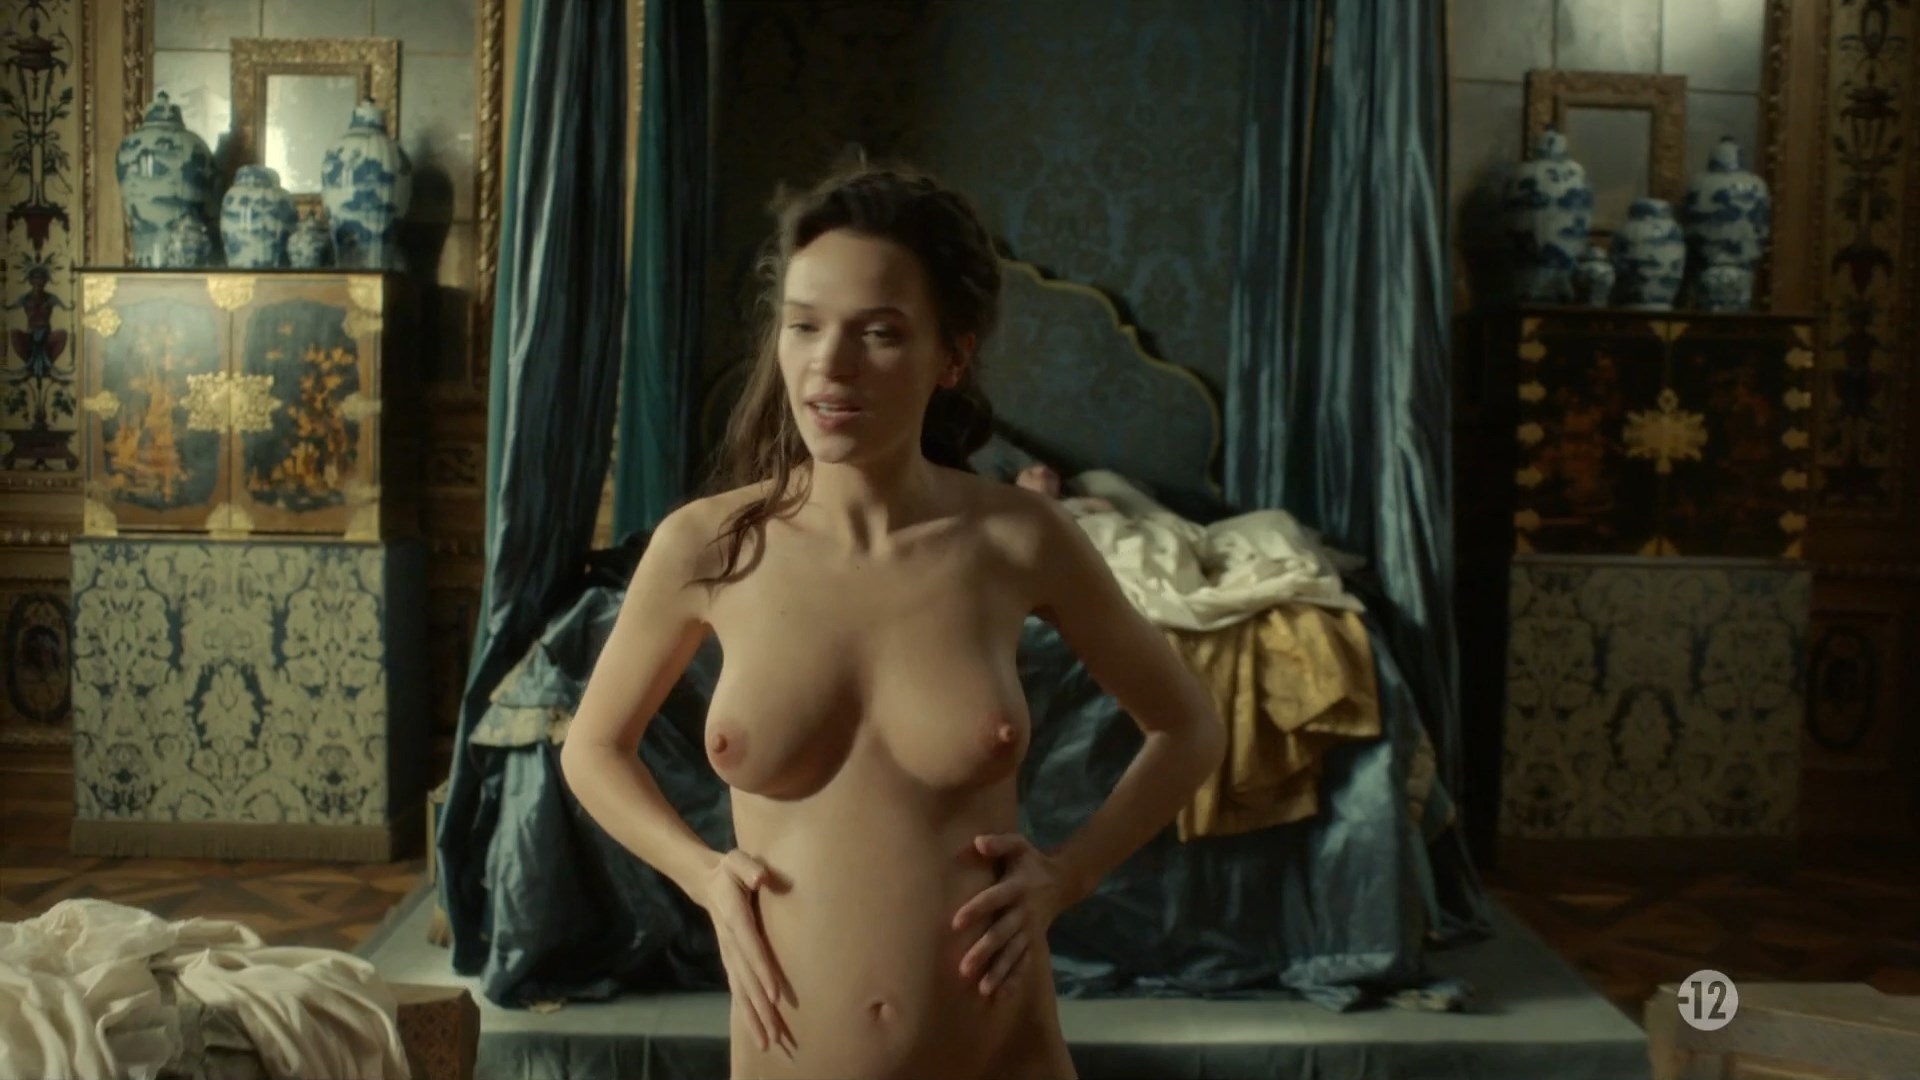 Watch Anna brewster full frontal video